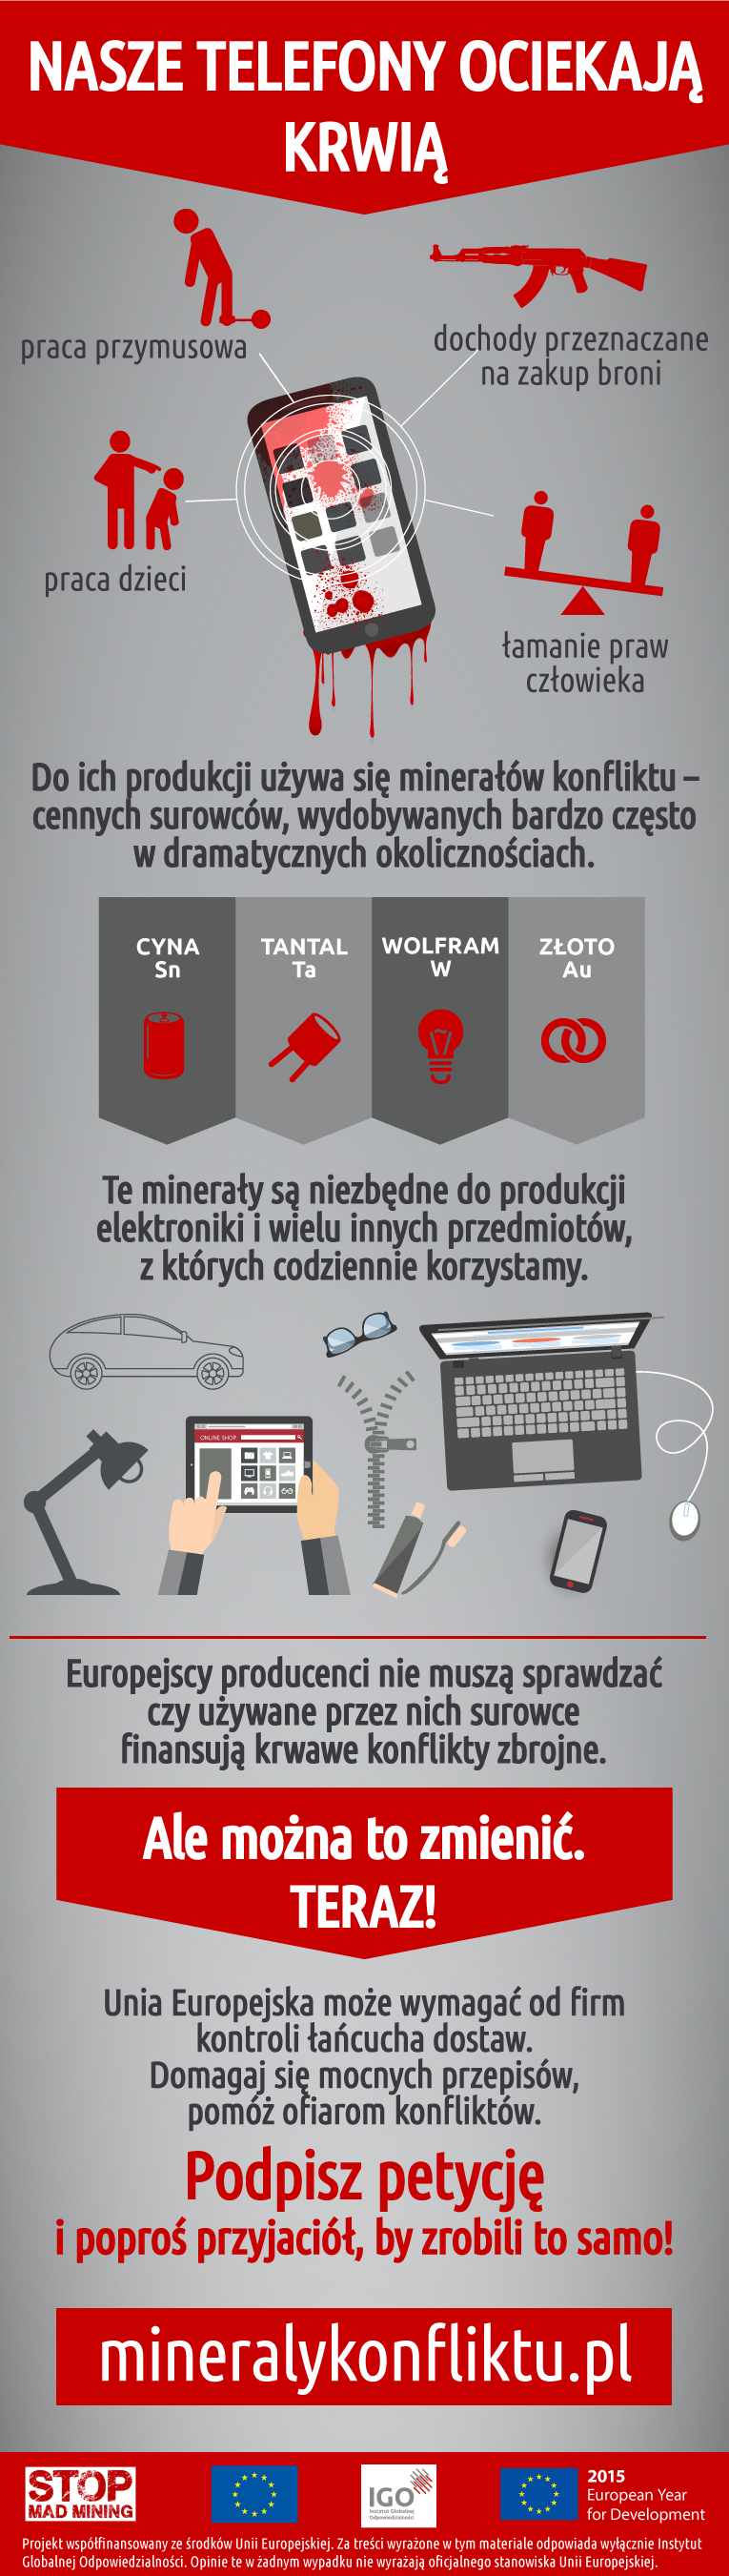 InfographicConflictMinerals_PL_final